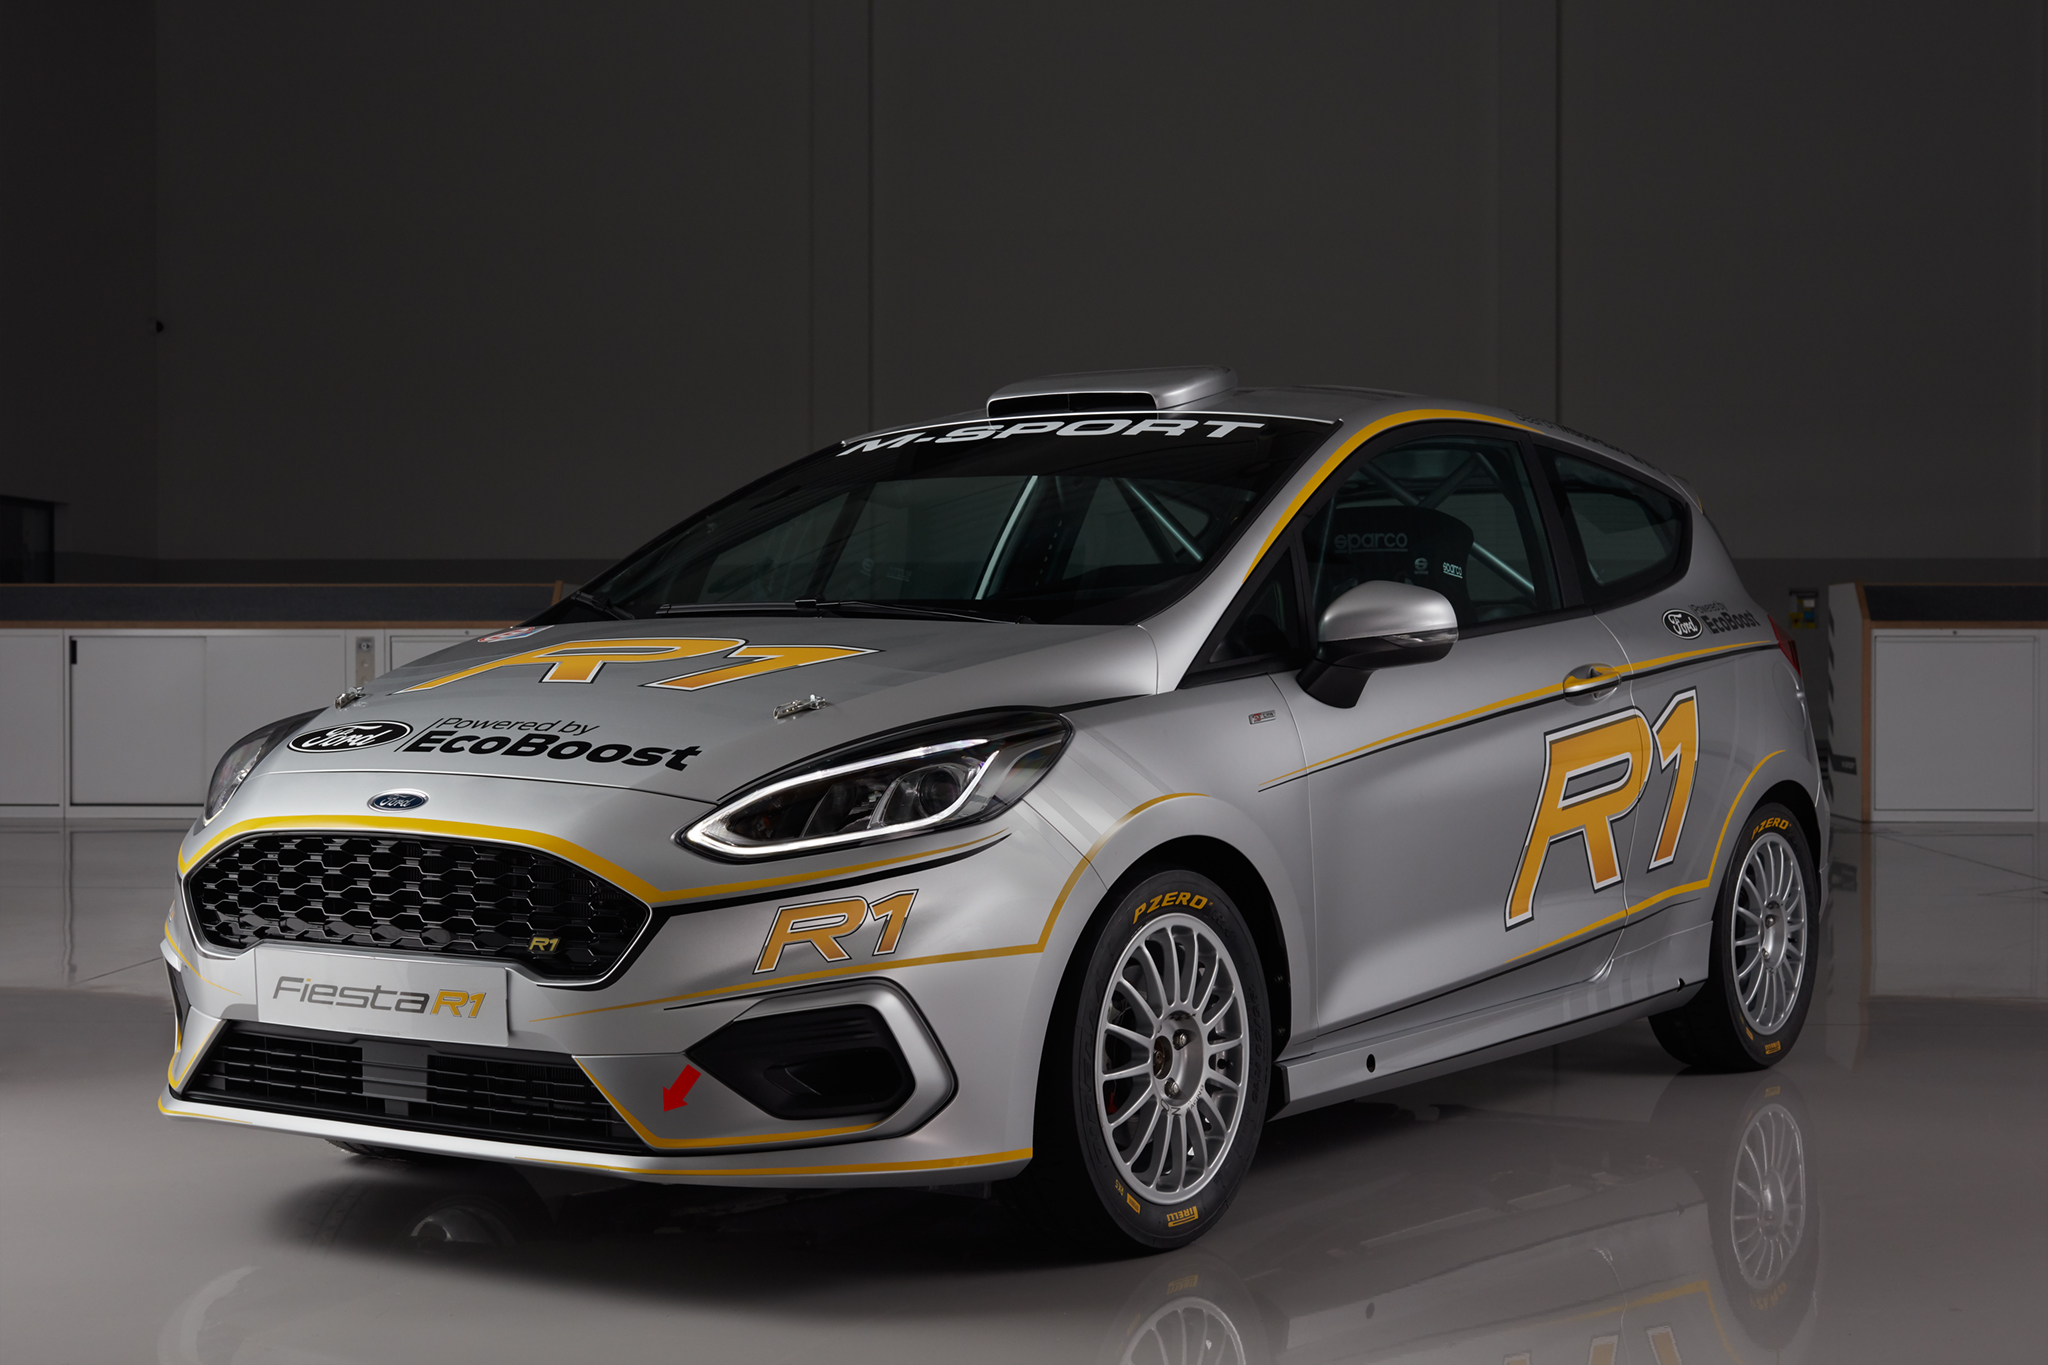 INTRODUCING THE ALL-NEW FORD FIESTA R1